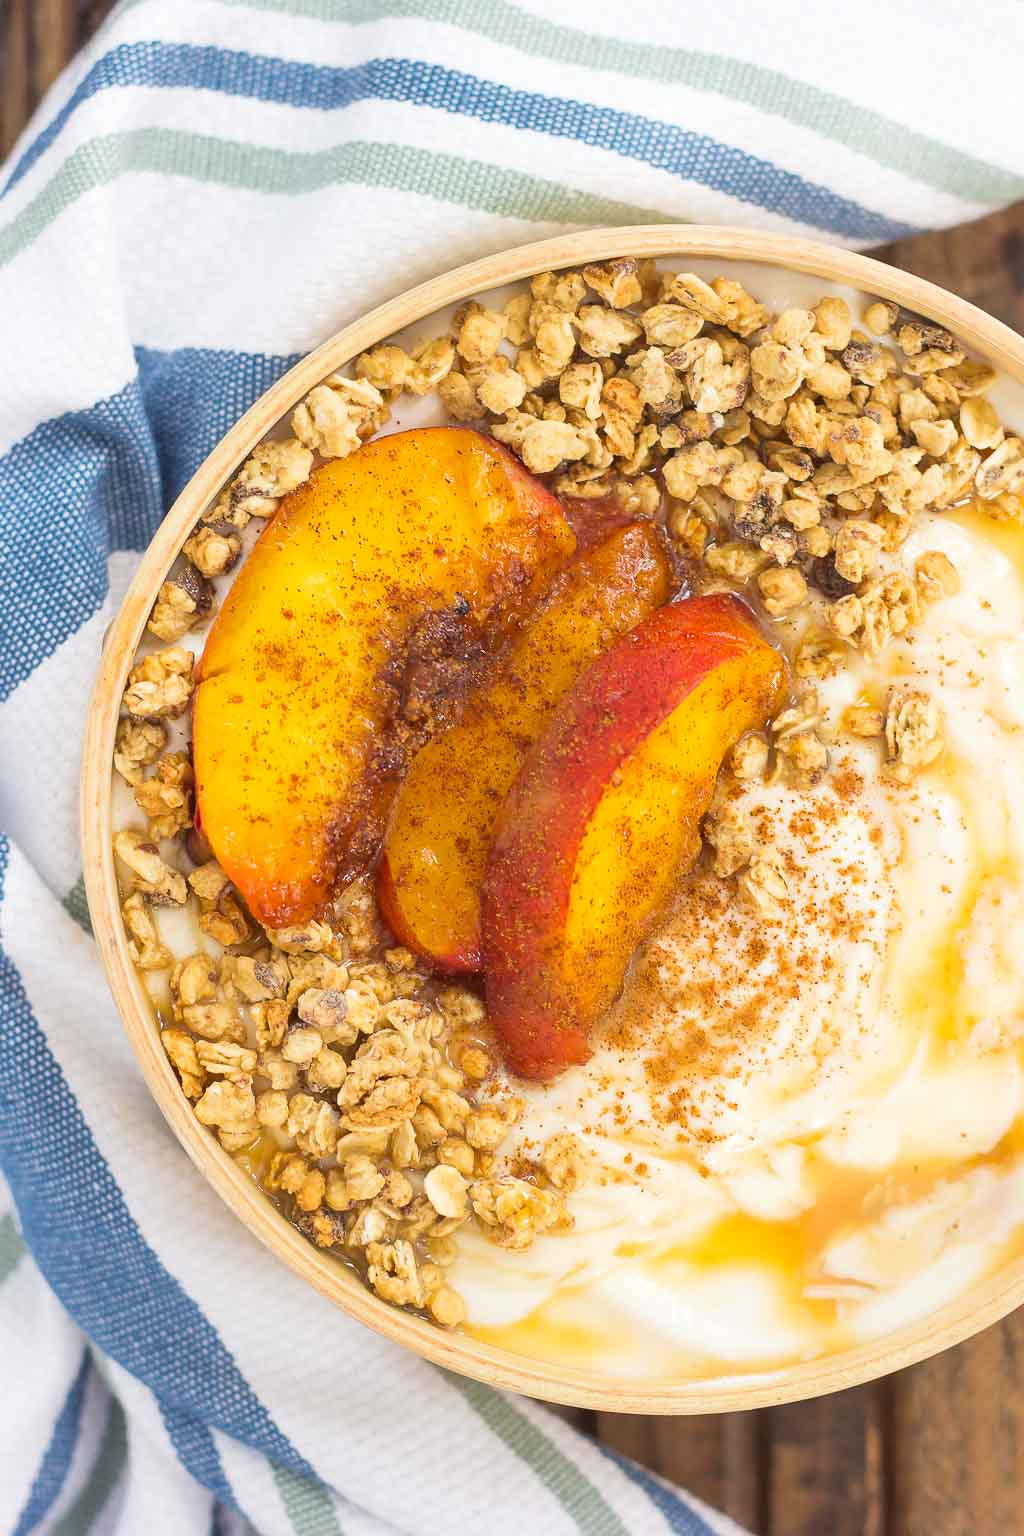 This Grilled Peach Caramel Yogurt Bowl is filled with creamy, vanilla Greek yogurt, grilled peaches with cinnamon and brown sugar, a sweet caramel sauce, and crunchy granola. It's ready in minutes and makes the perfect breakfast or snack!